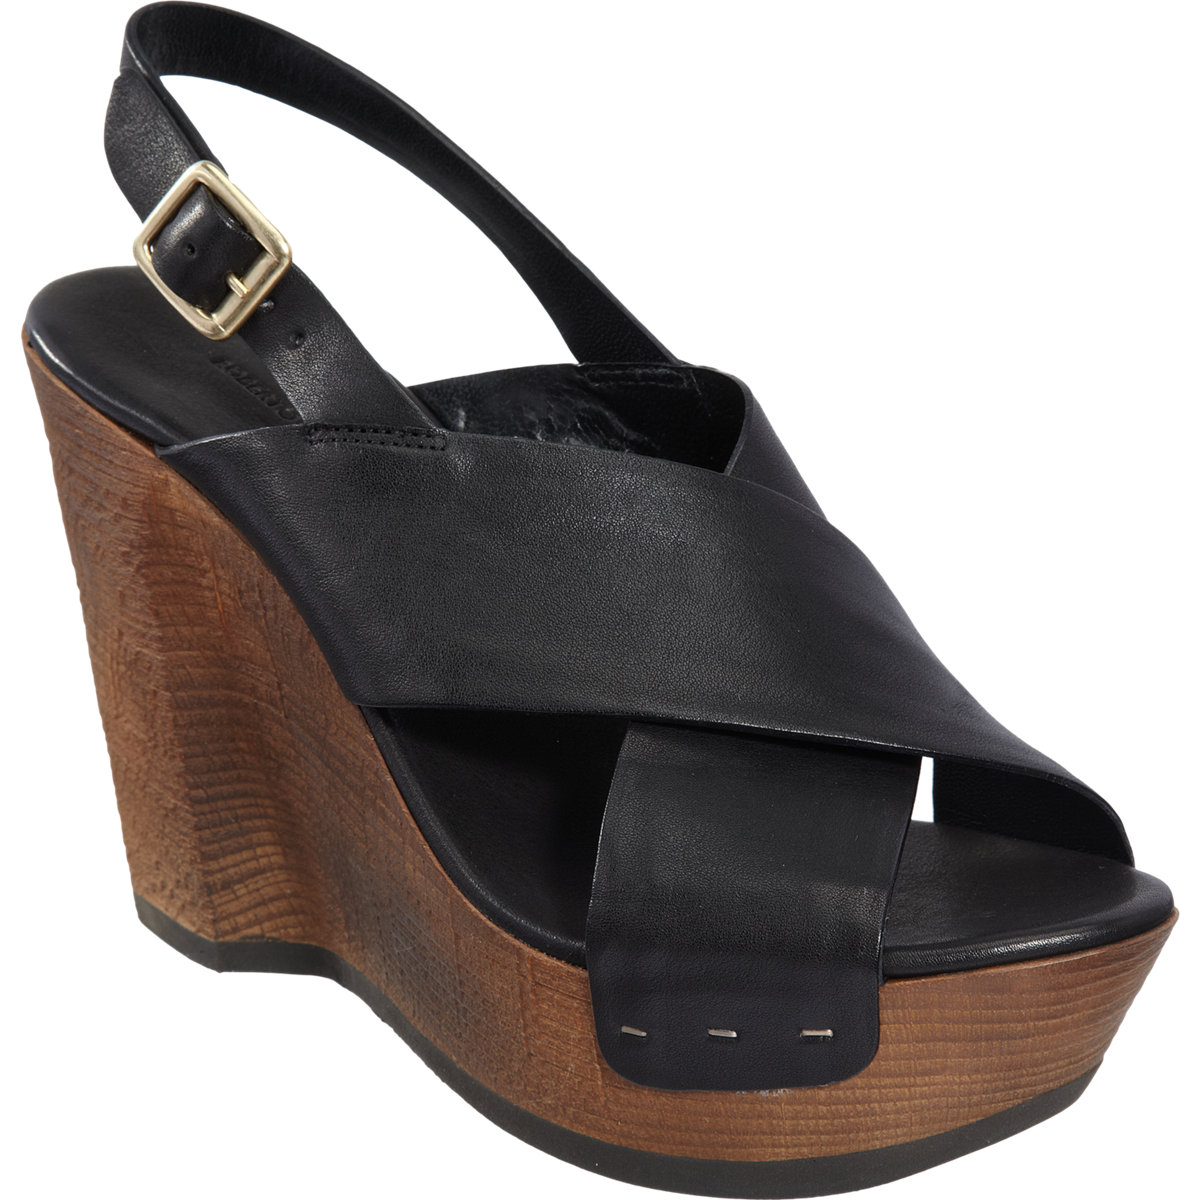 Roberto Del Carlo Stacked Wooden Wedge Slingback Sandal In